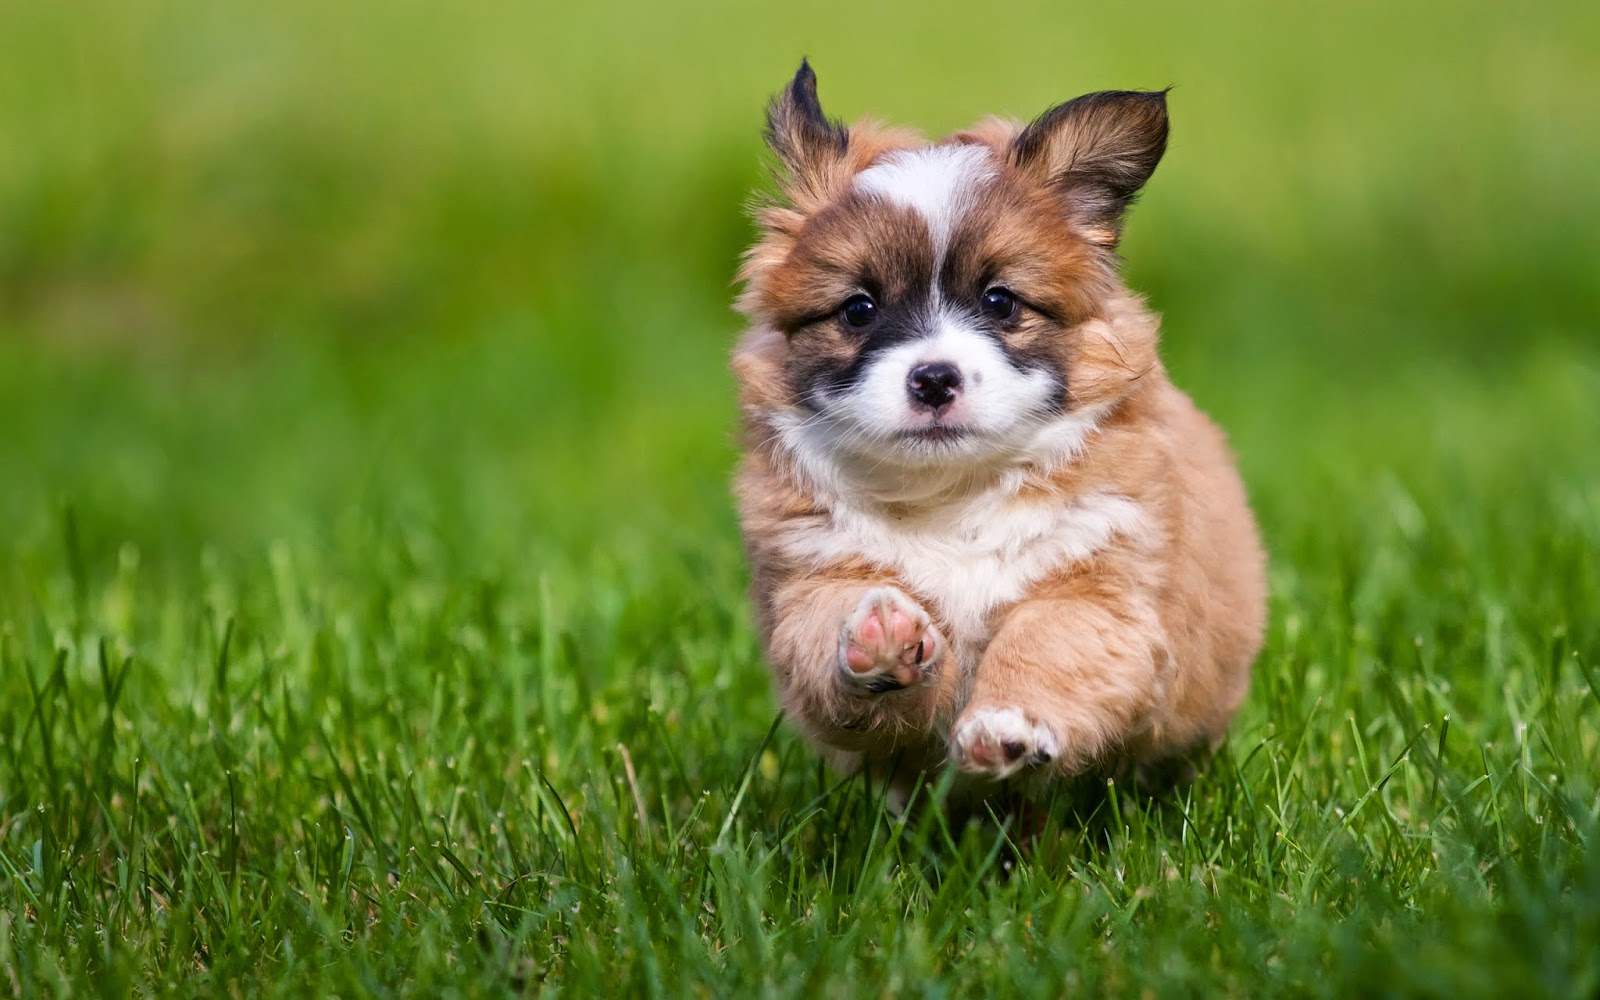 Best Grass For Dogs To Eat